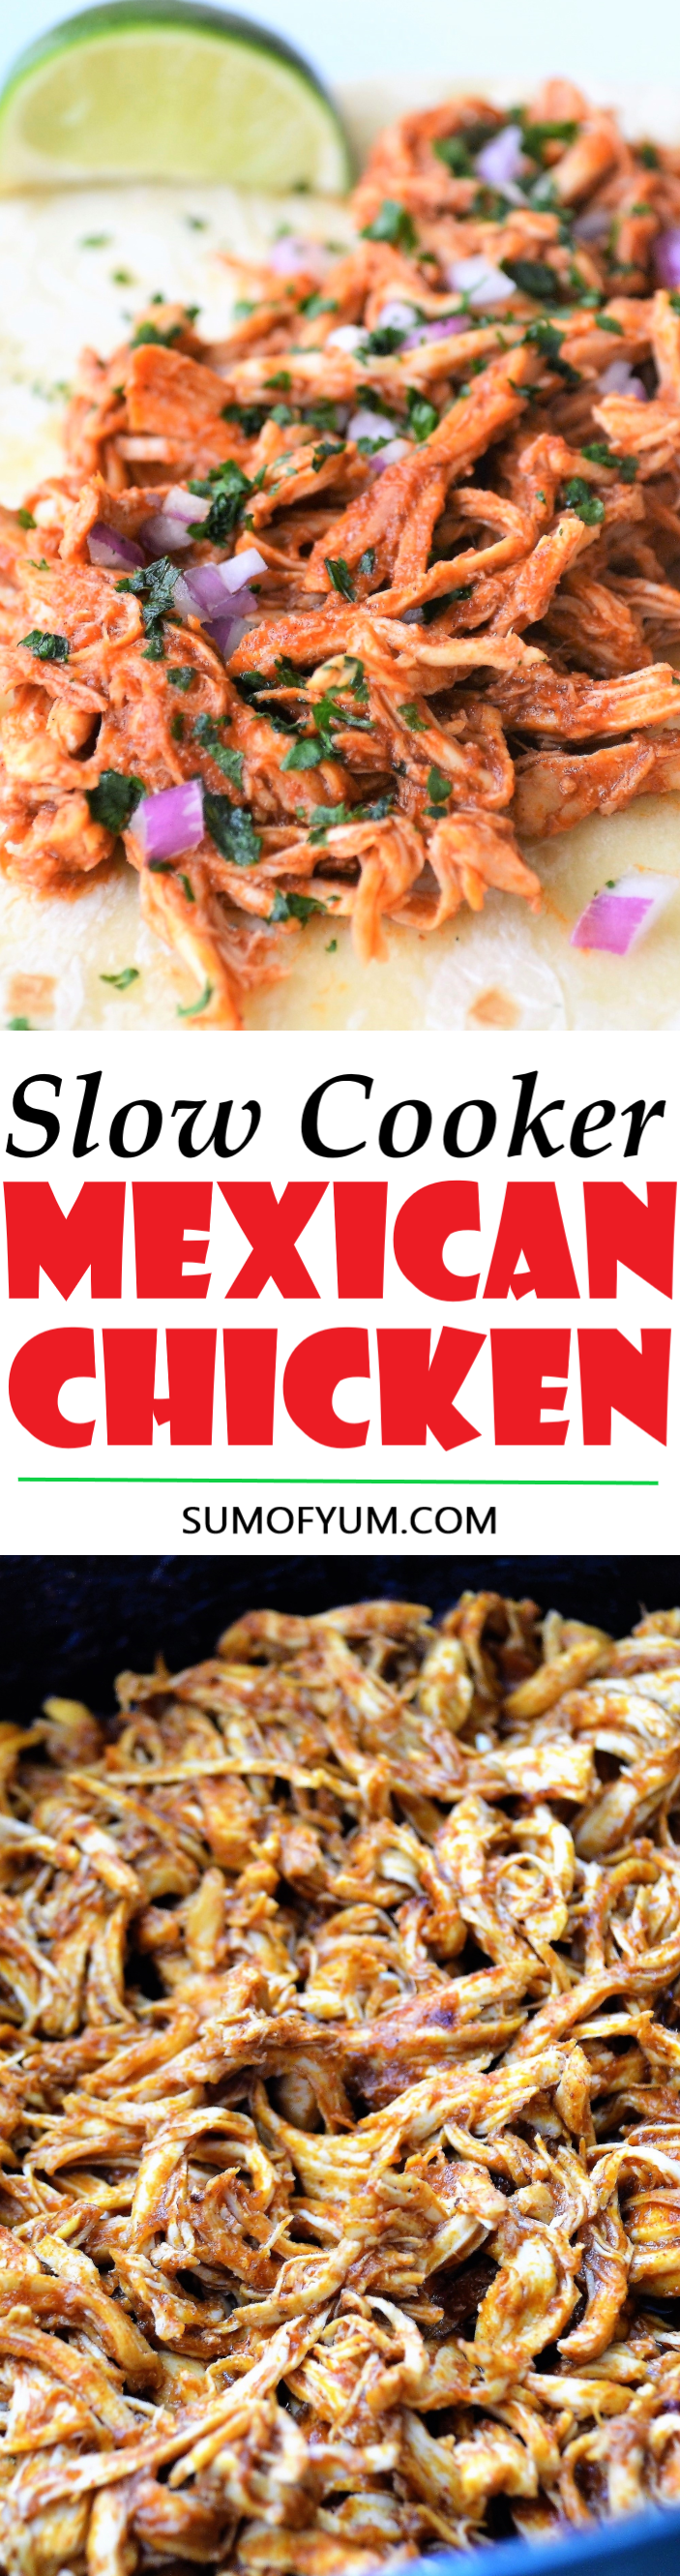 Slow Cooker Shredded Mexican Chicken is perfect for tacos, burritos, quesadillas, enchiladas, taco salad, nachos, or any other dish you can come up with. Recipe on sumofyum.com #easy #crockpot #mexican #chicken #comfortfood #mexicanchickentacos